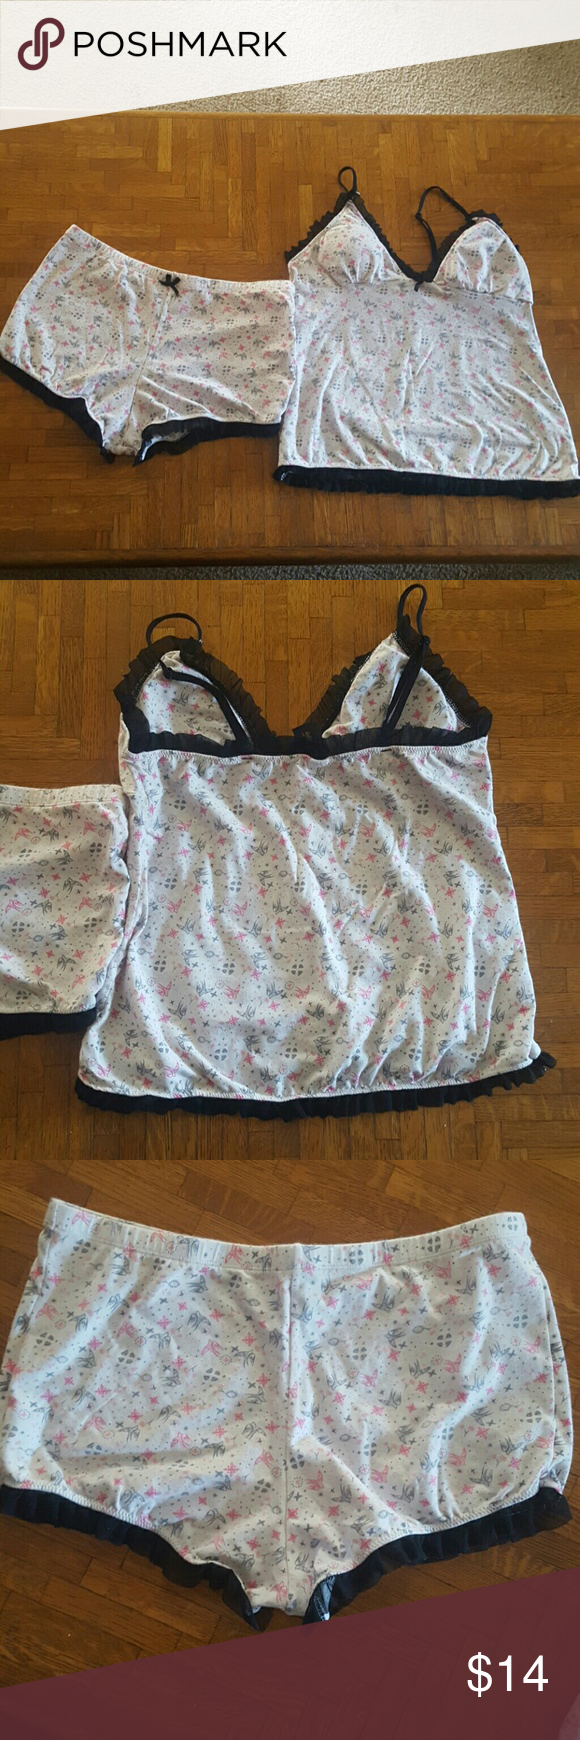 Cute pajama set Very cute and comfy pajama set. Shorts and tank top with padding and adjustable straps. In great condition. Midnight Coco Intimates & Sleepwear Pajamas